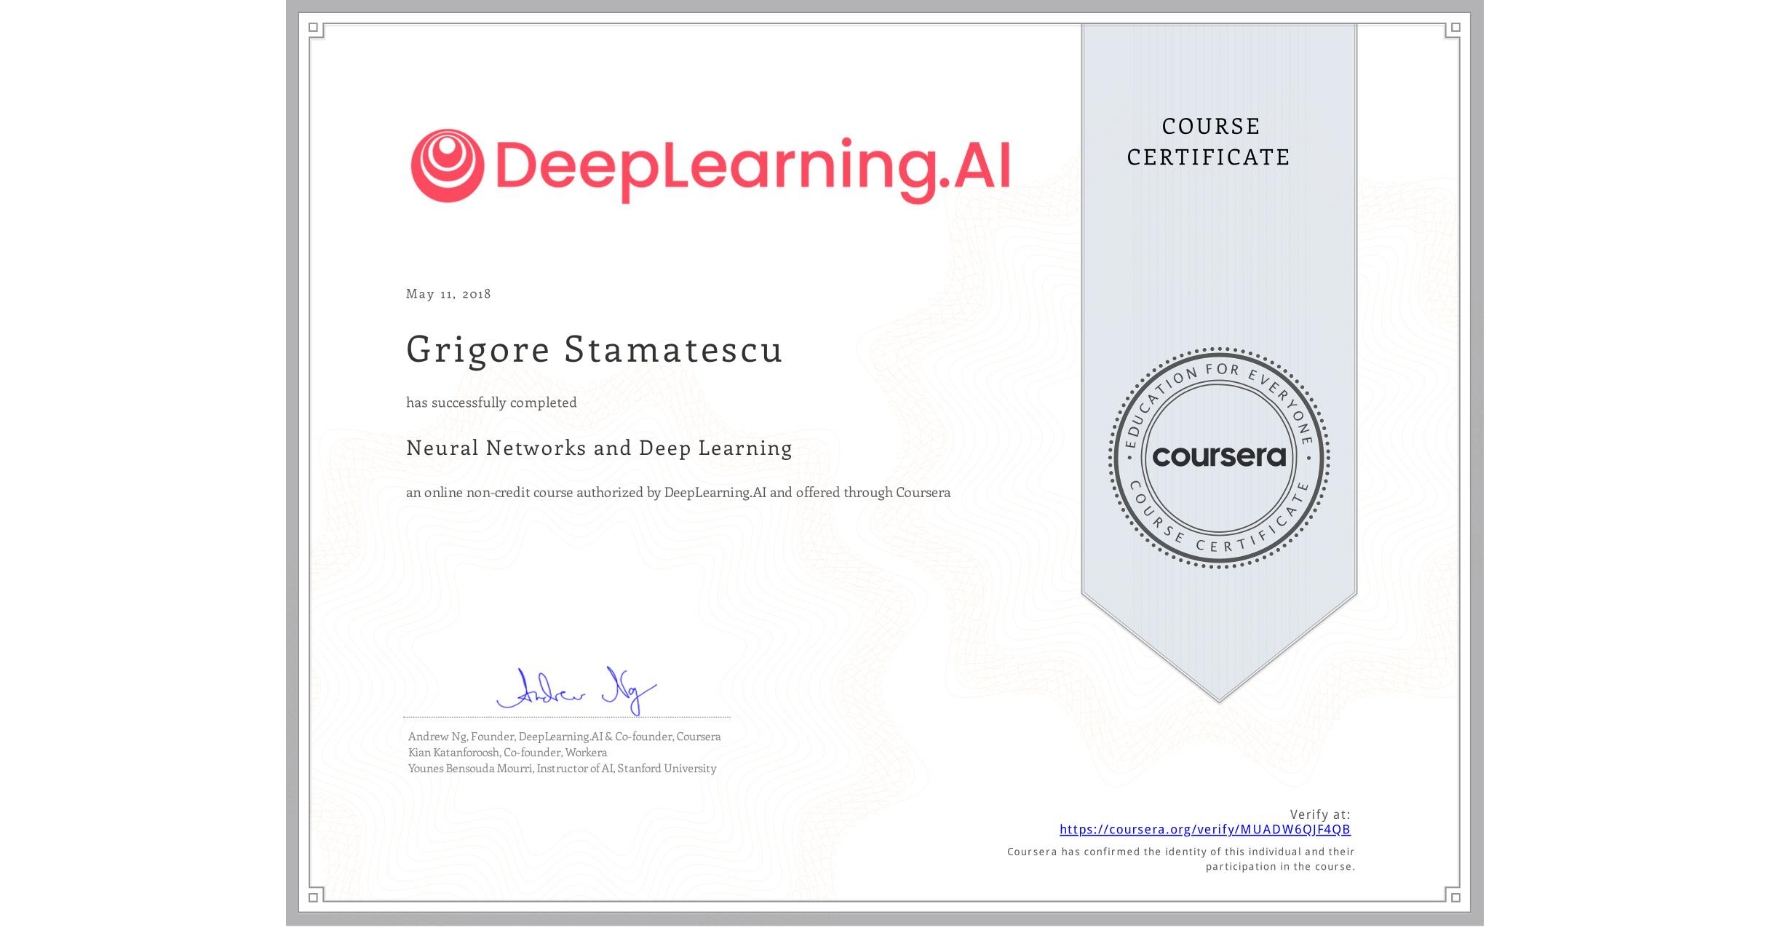 View certificate for Grigore Stamatescu, Neural Networks and Deep Learning, an online non-credit course authorized by DeepLearning.AI and offered through Coursera